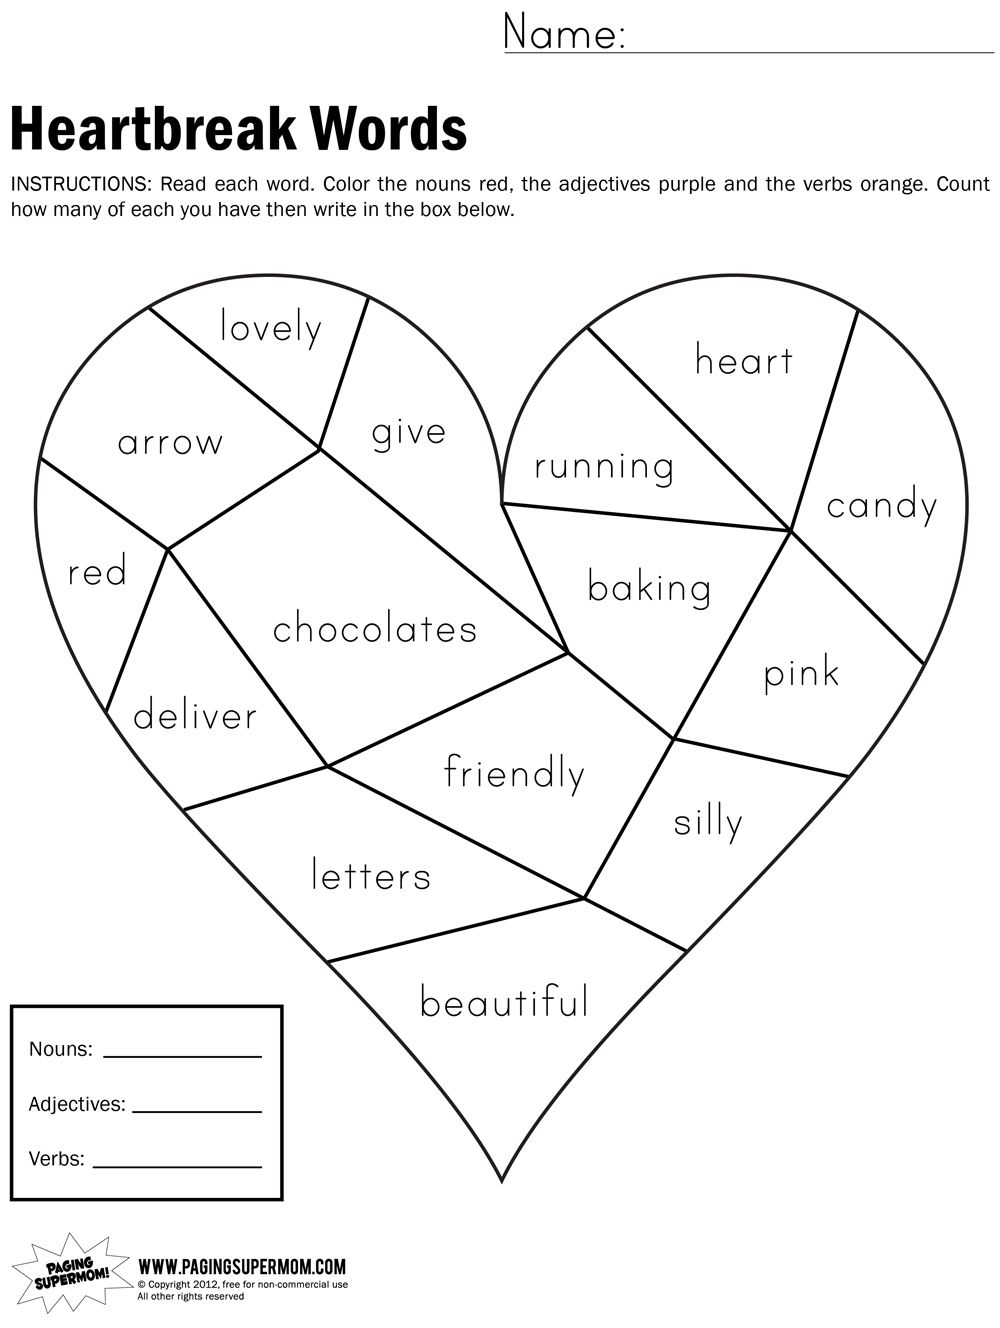 Worksheet Worksheets Printable Free word free printable worksheets and on pinterest